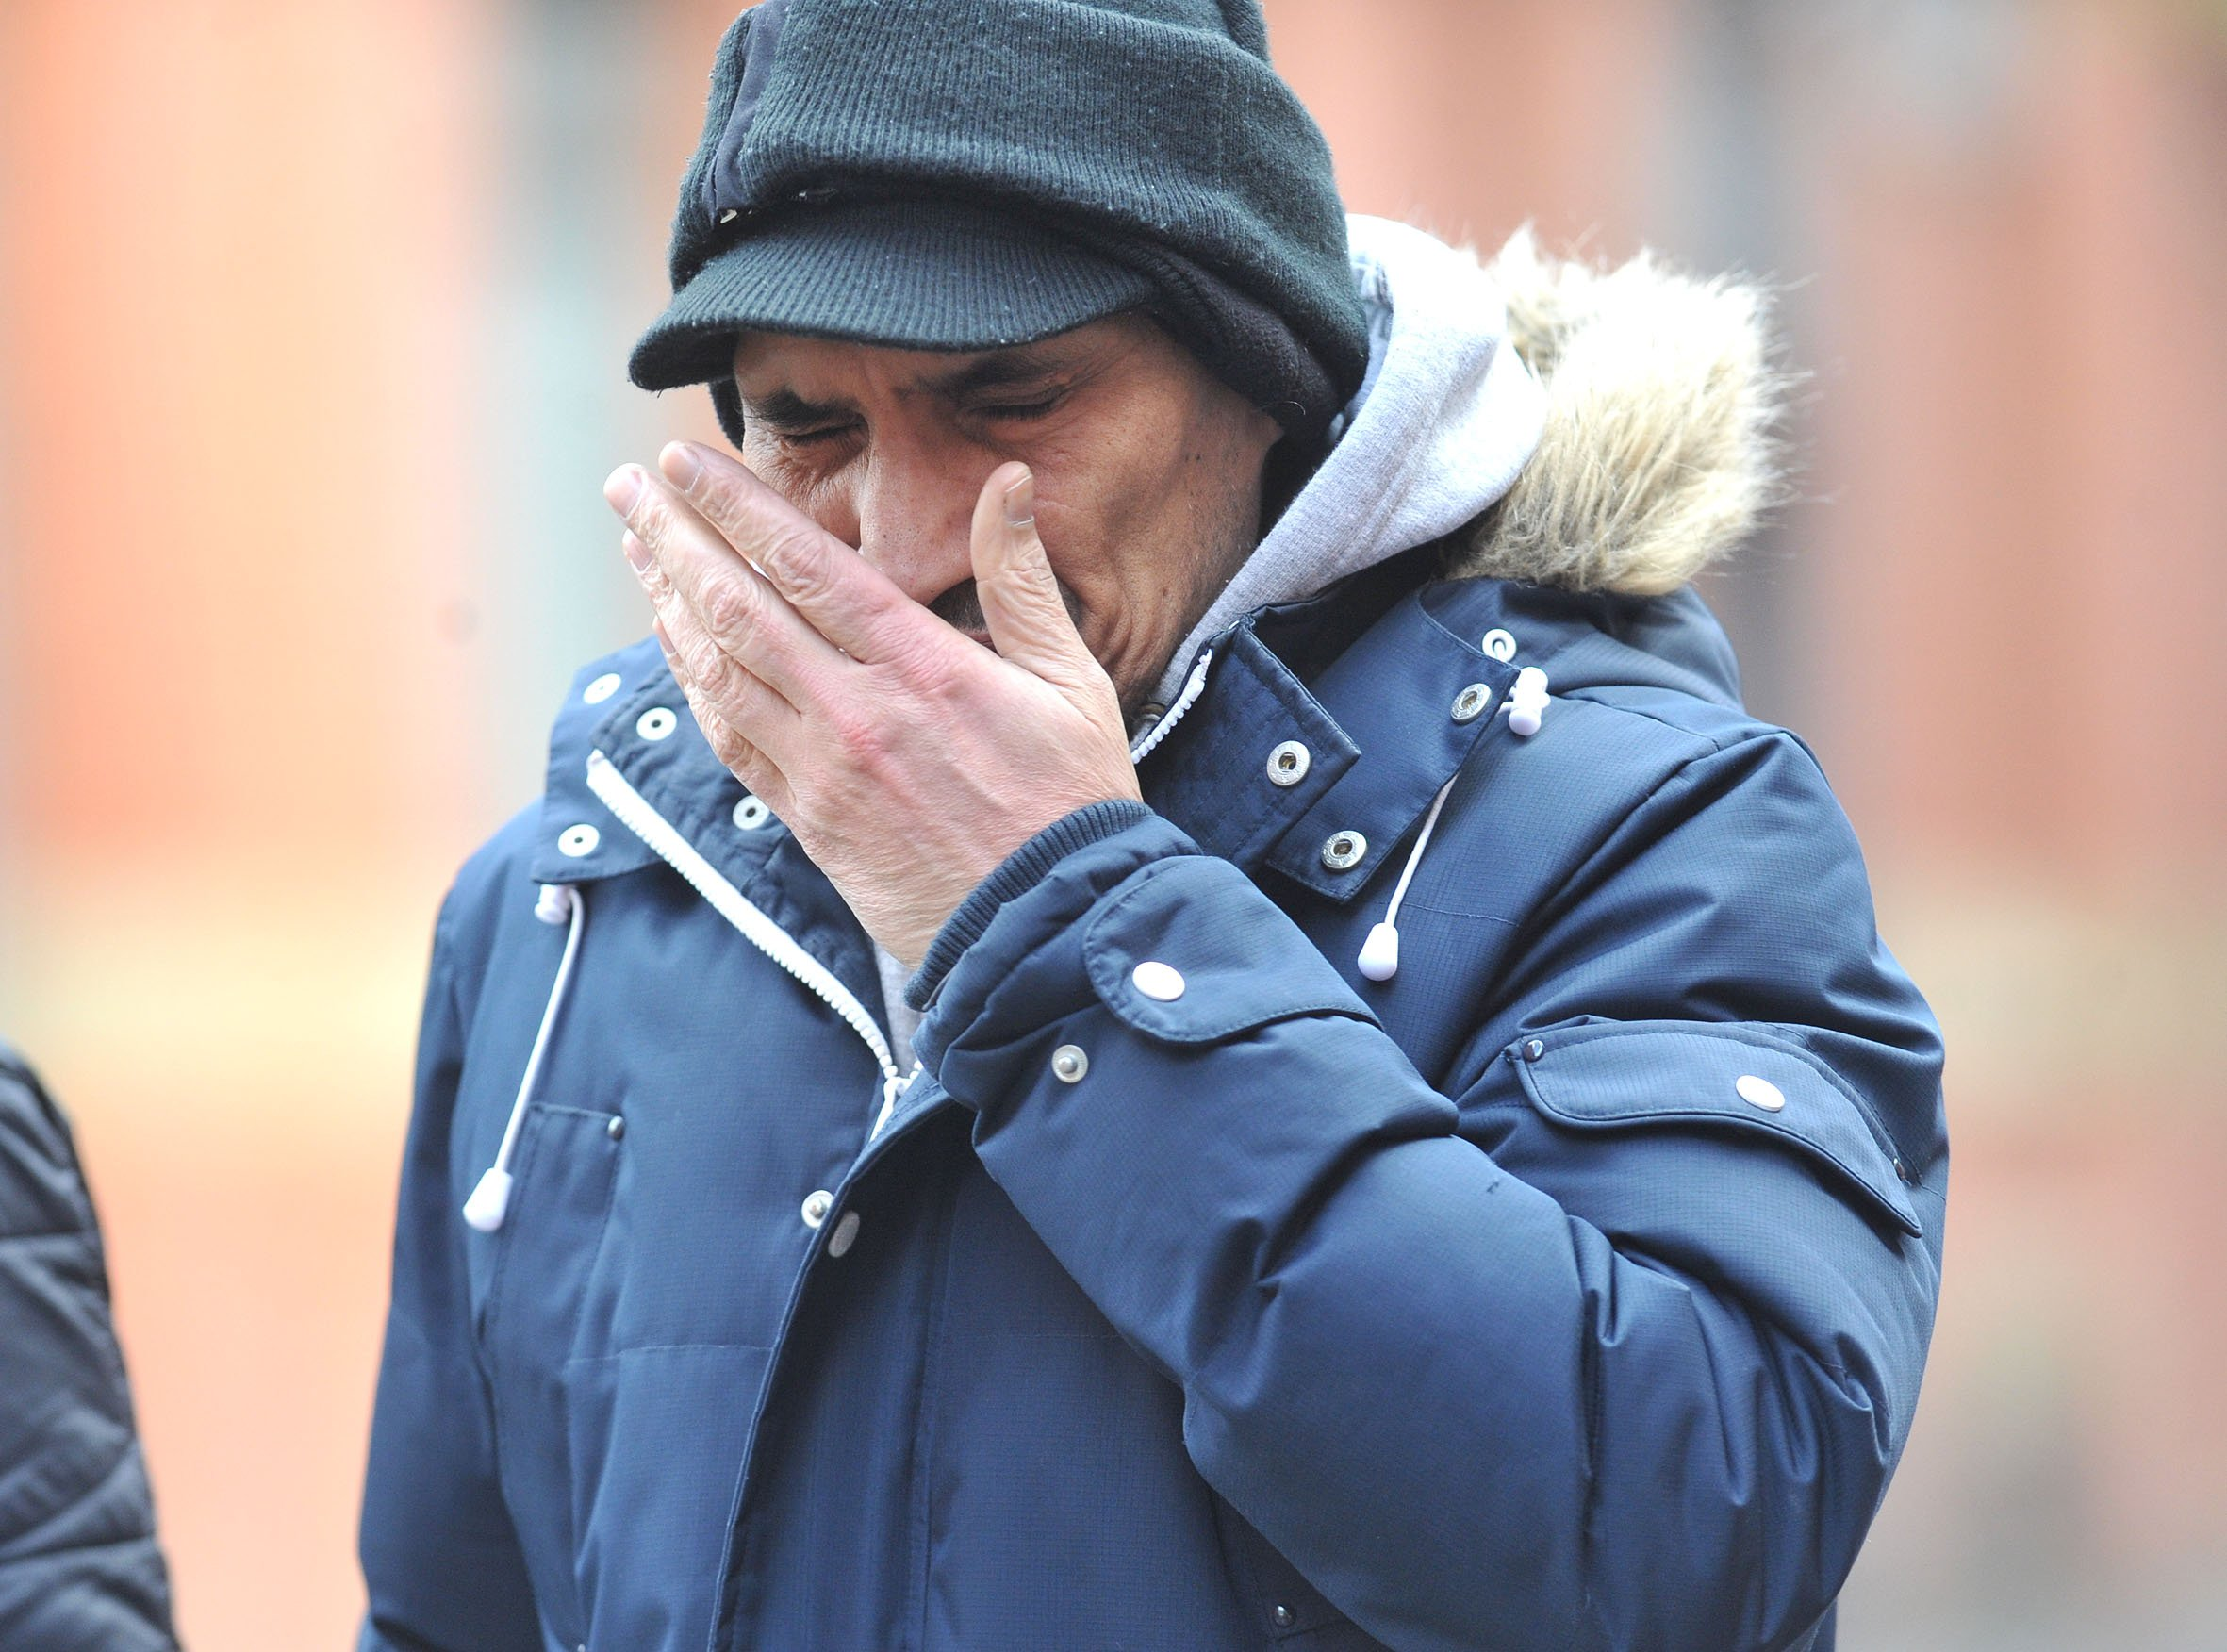 Manchester Magistrates Court Mohammed Rashid, 56, from 7 Wellfield Road, Crumpsall, charged with on Aug 31 while on a flight from Dubai to Manchester he assaulted three people (Terry Harper, Tores Melham, and Robert Brown)n